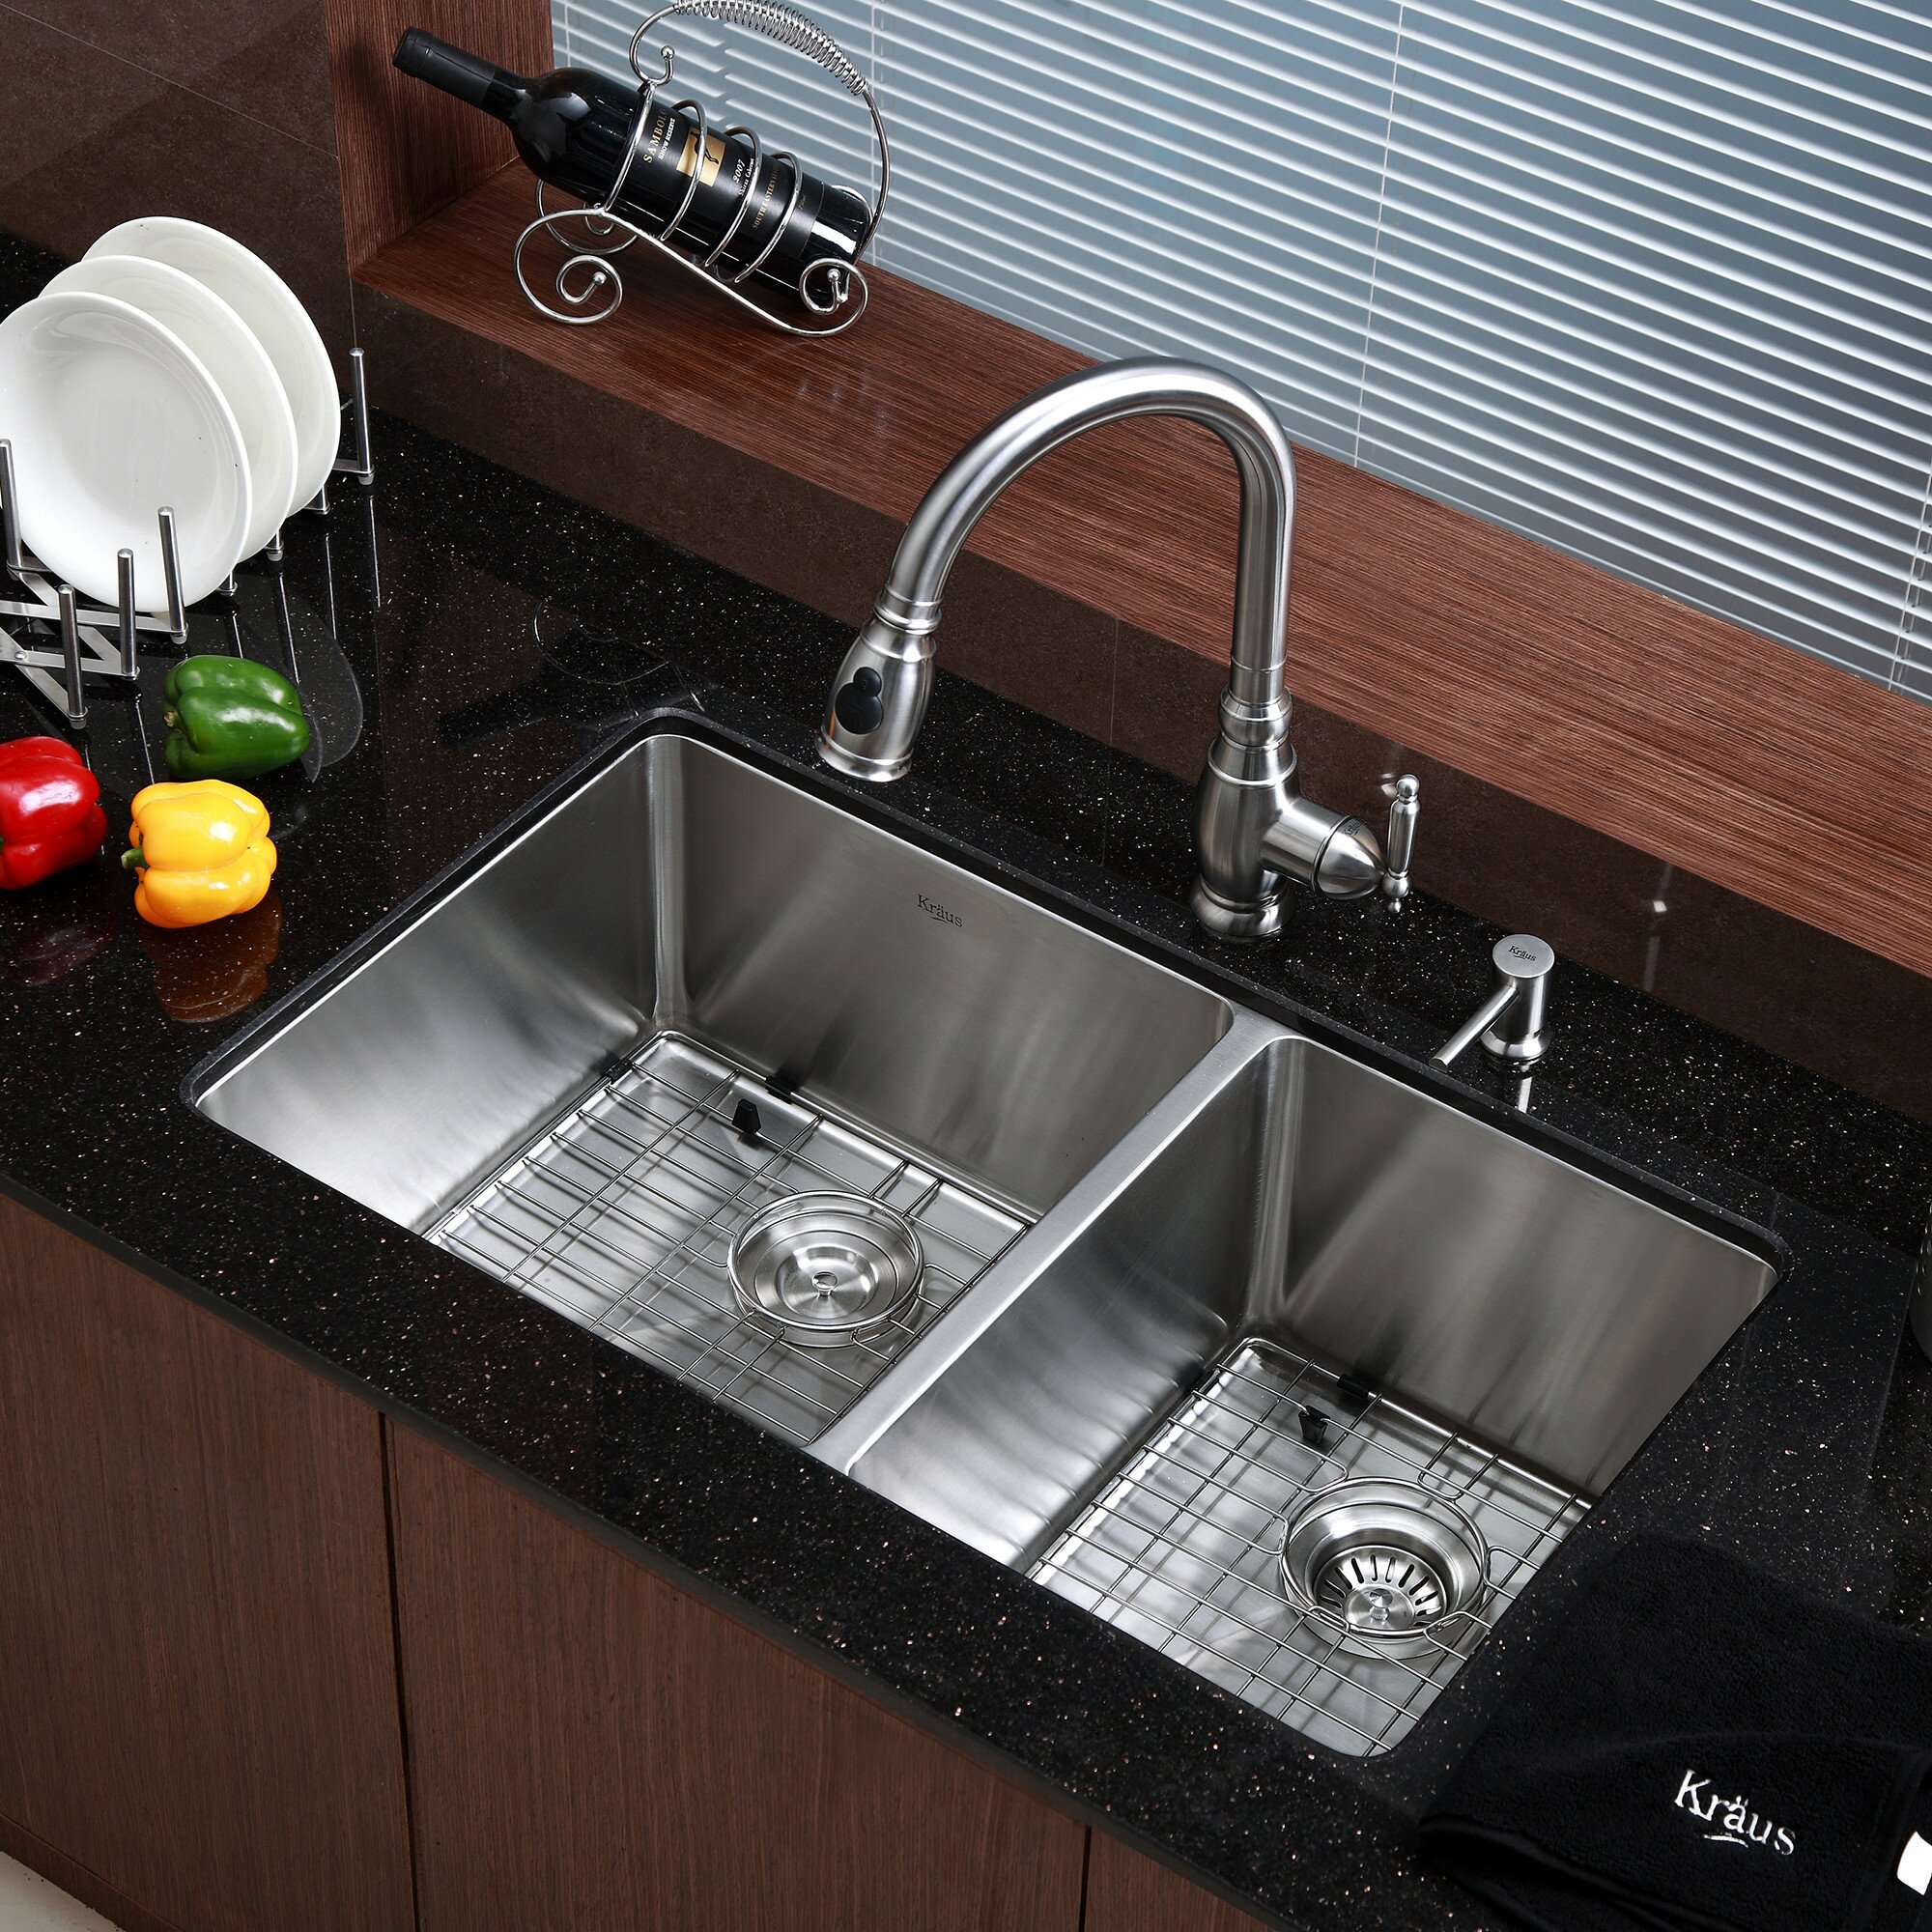 Kitchen Sinks Stainless Steel | Wholesale Kitchen Sinks Stainless Steel |  Ss Sinks